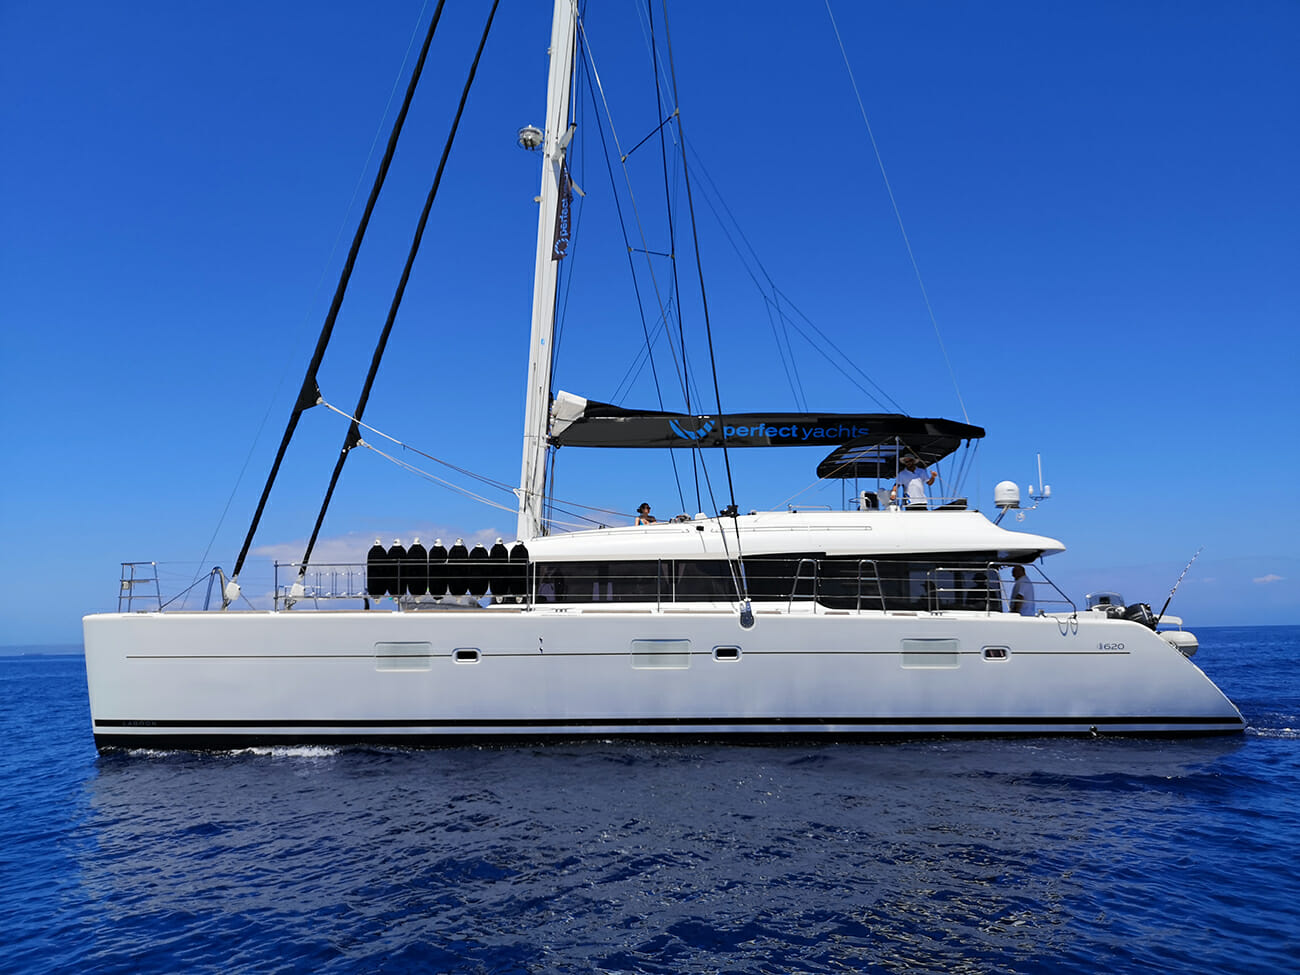 Perfect Yachts: Bringing the Dream of the Ideal Sea Journey to Reality